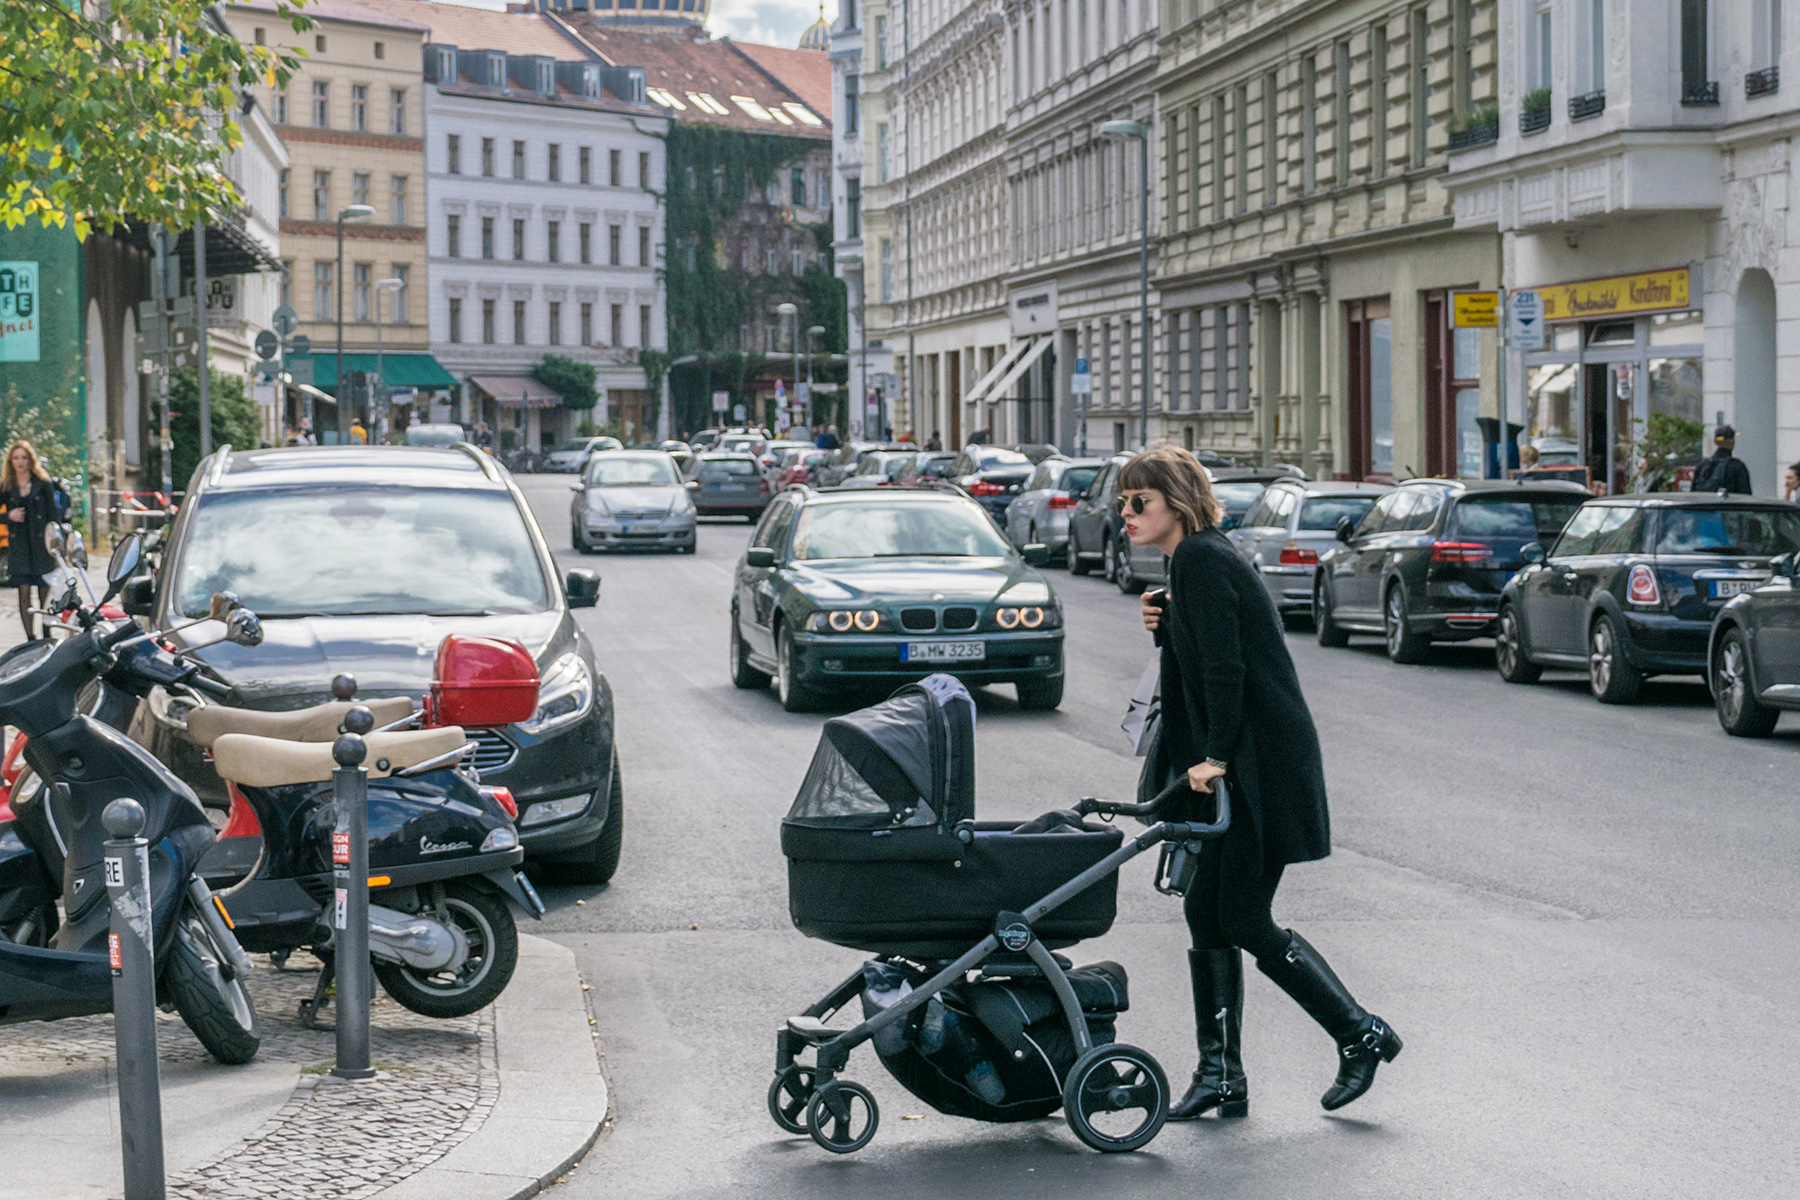 A mother crosses a street with a stroller in Berlin